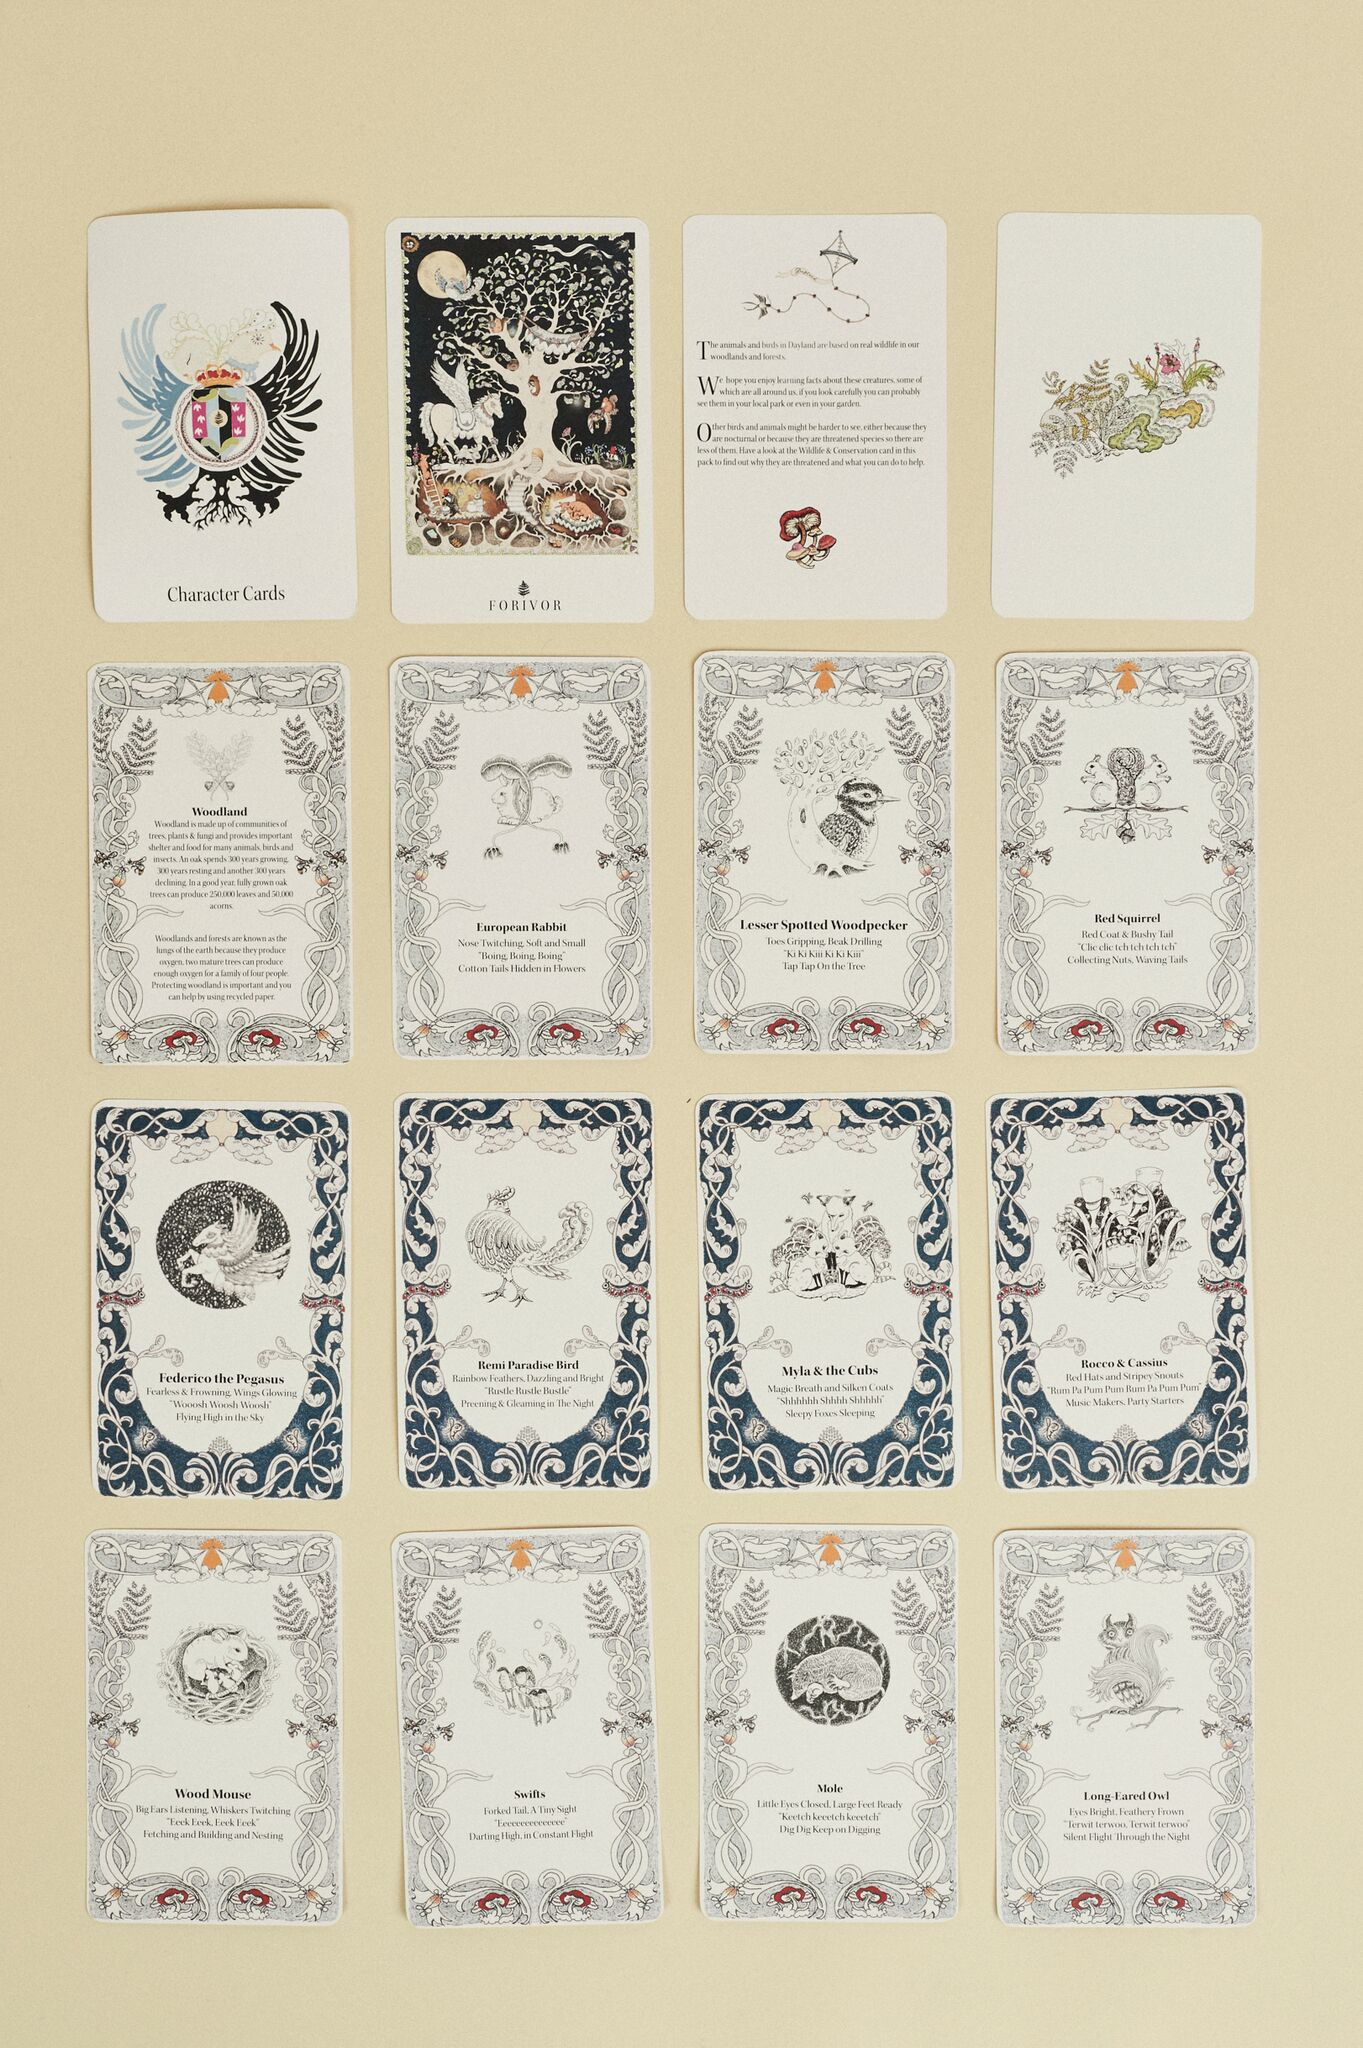 Forivor's Character cards